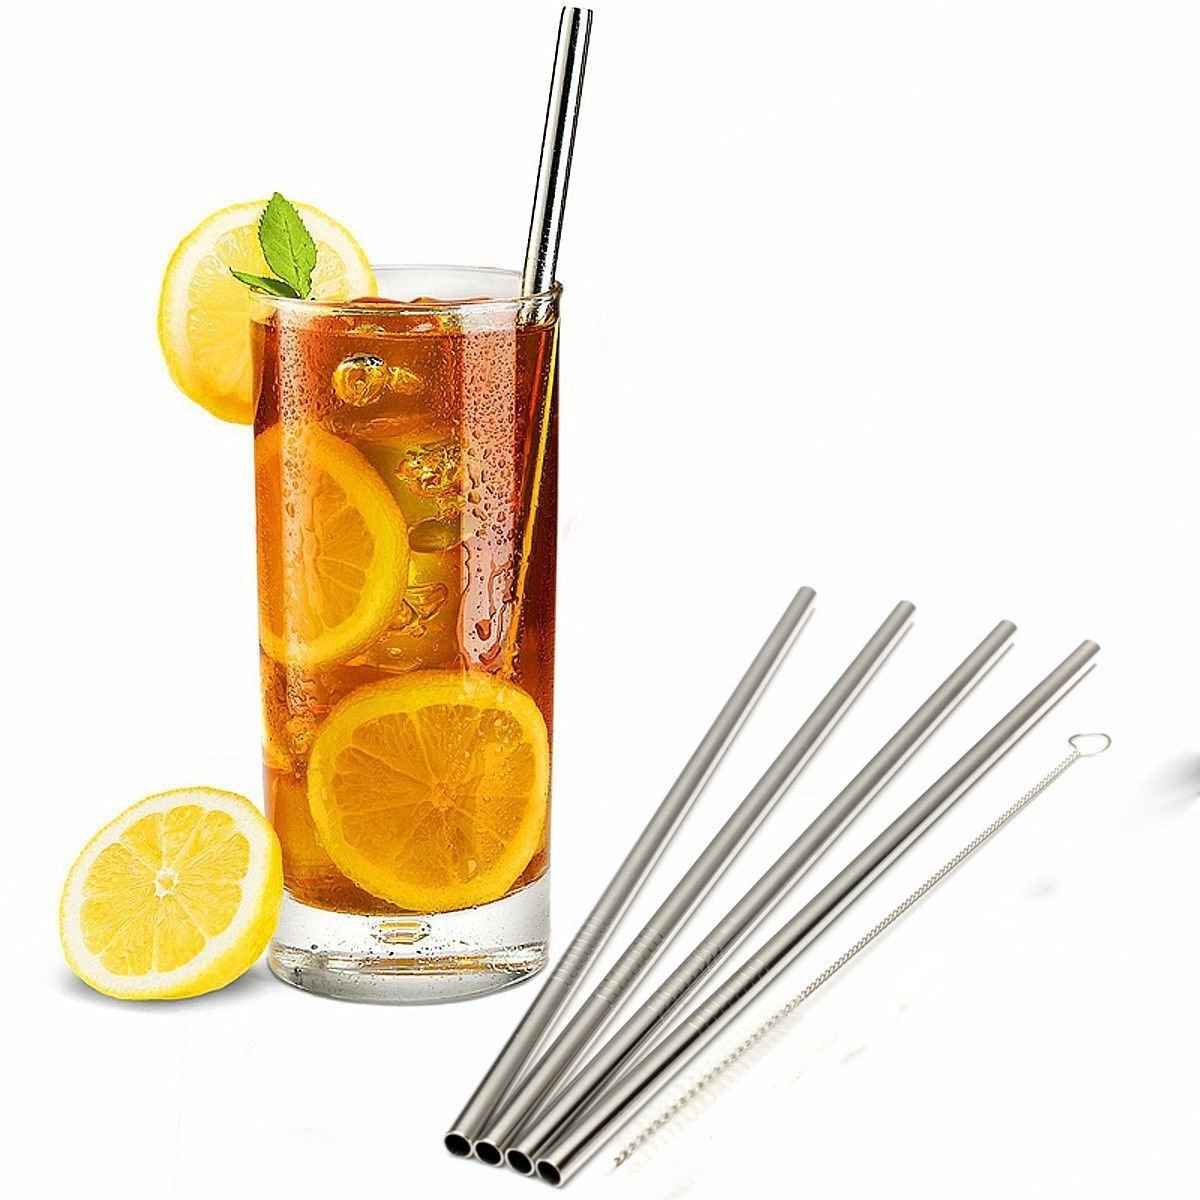 UltraByEasyPeasyStore Pack of 100 Stainless Steel Straws & 10 cleaning brushes 6mm thick Straight Reusable Washable NON-TOXIC (100)